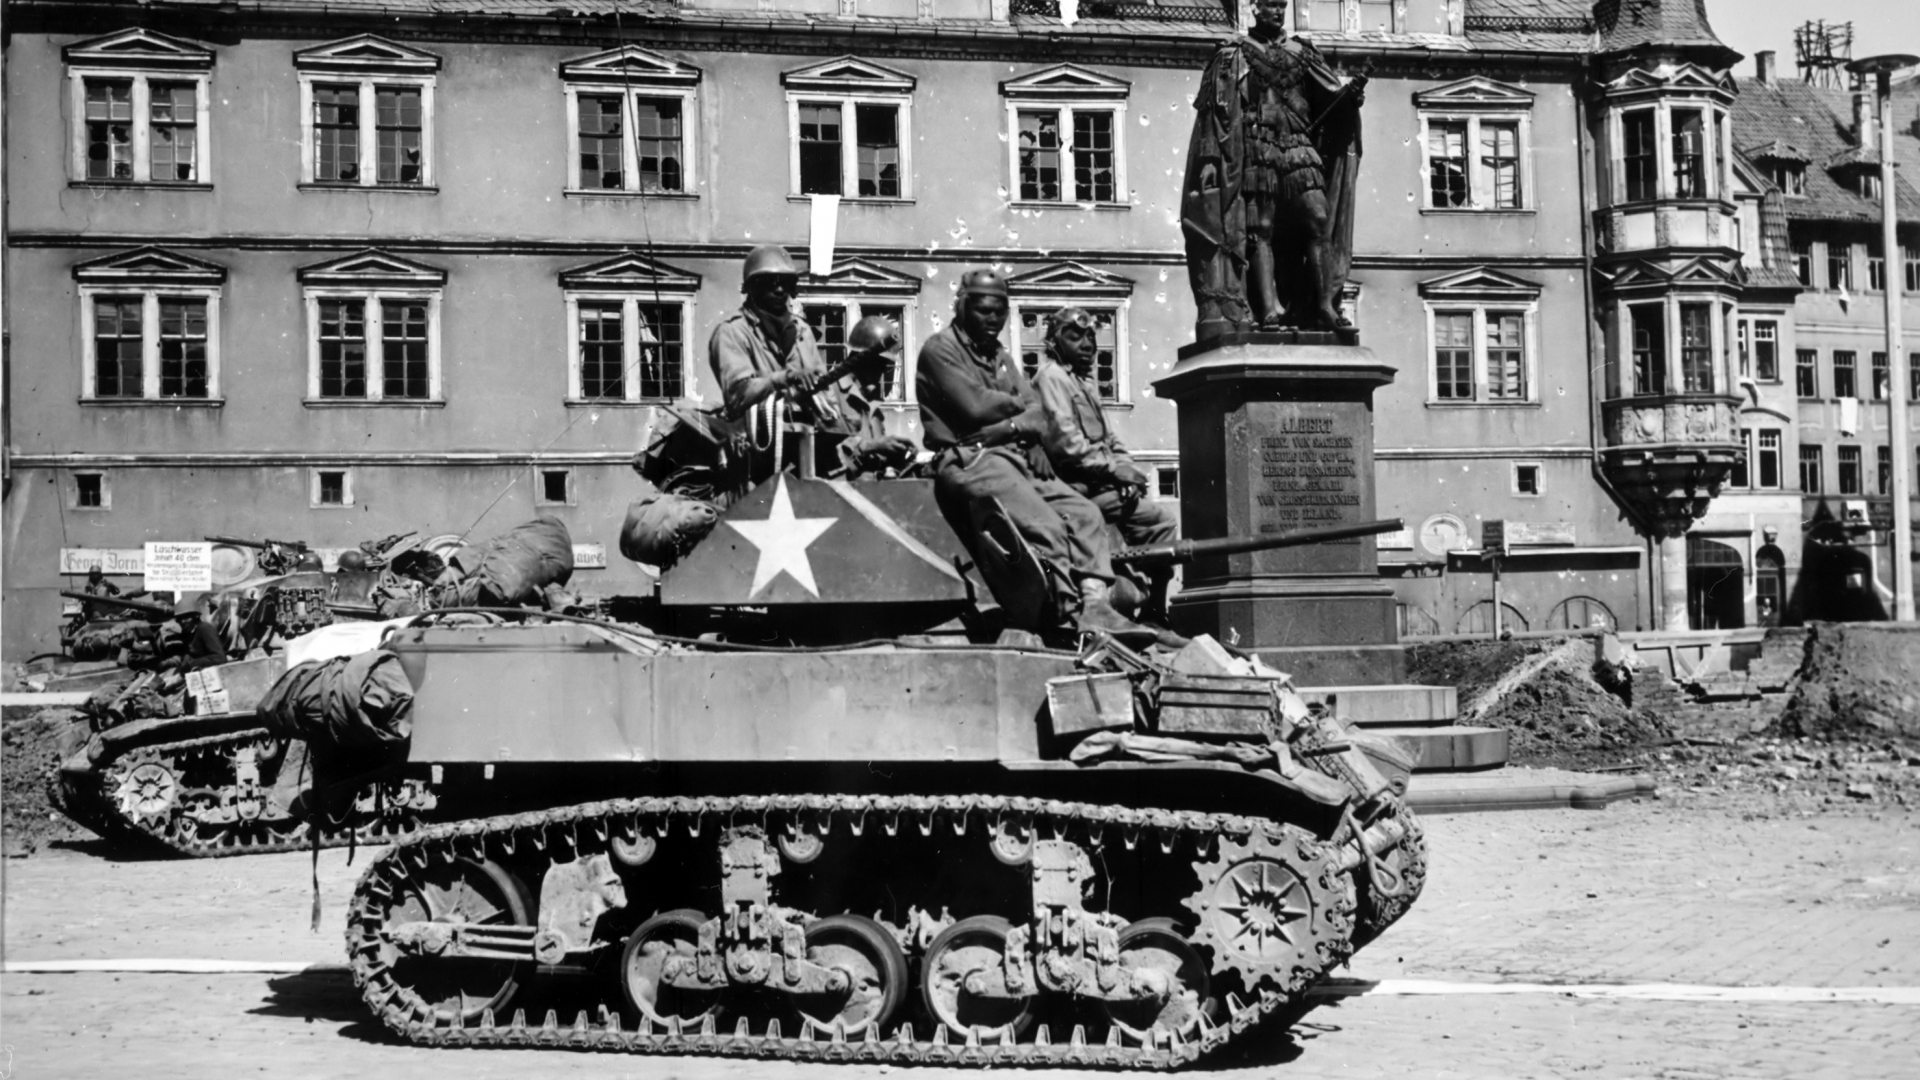 A tank and crew from the 761st Tank Battalion in front of the Prince Albert Memorial in Coburg, Germany, 1945. (Credit: The National Archives)